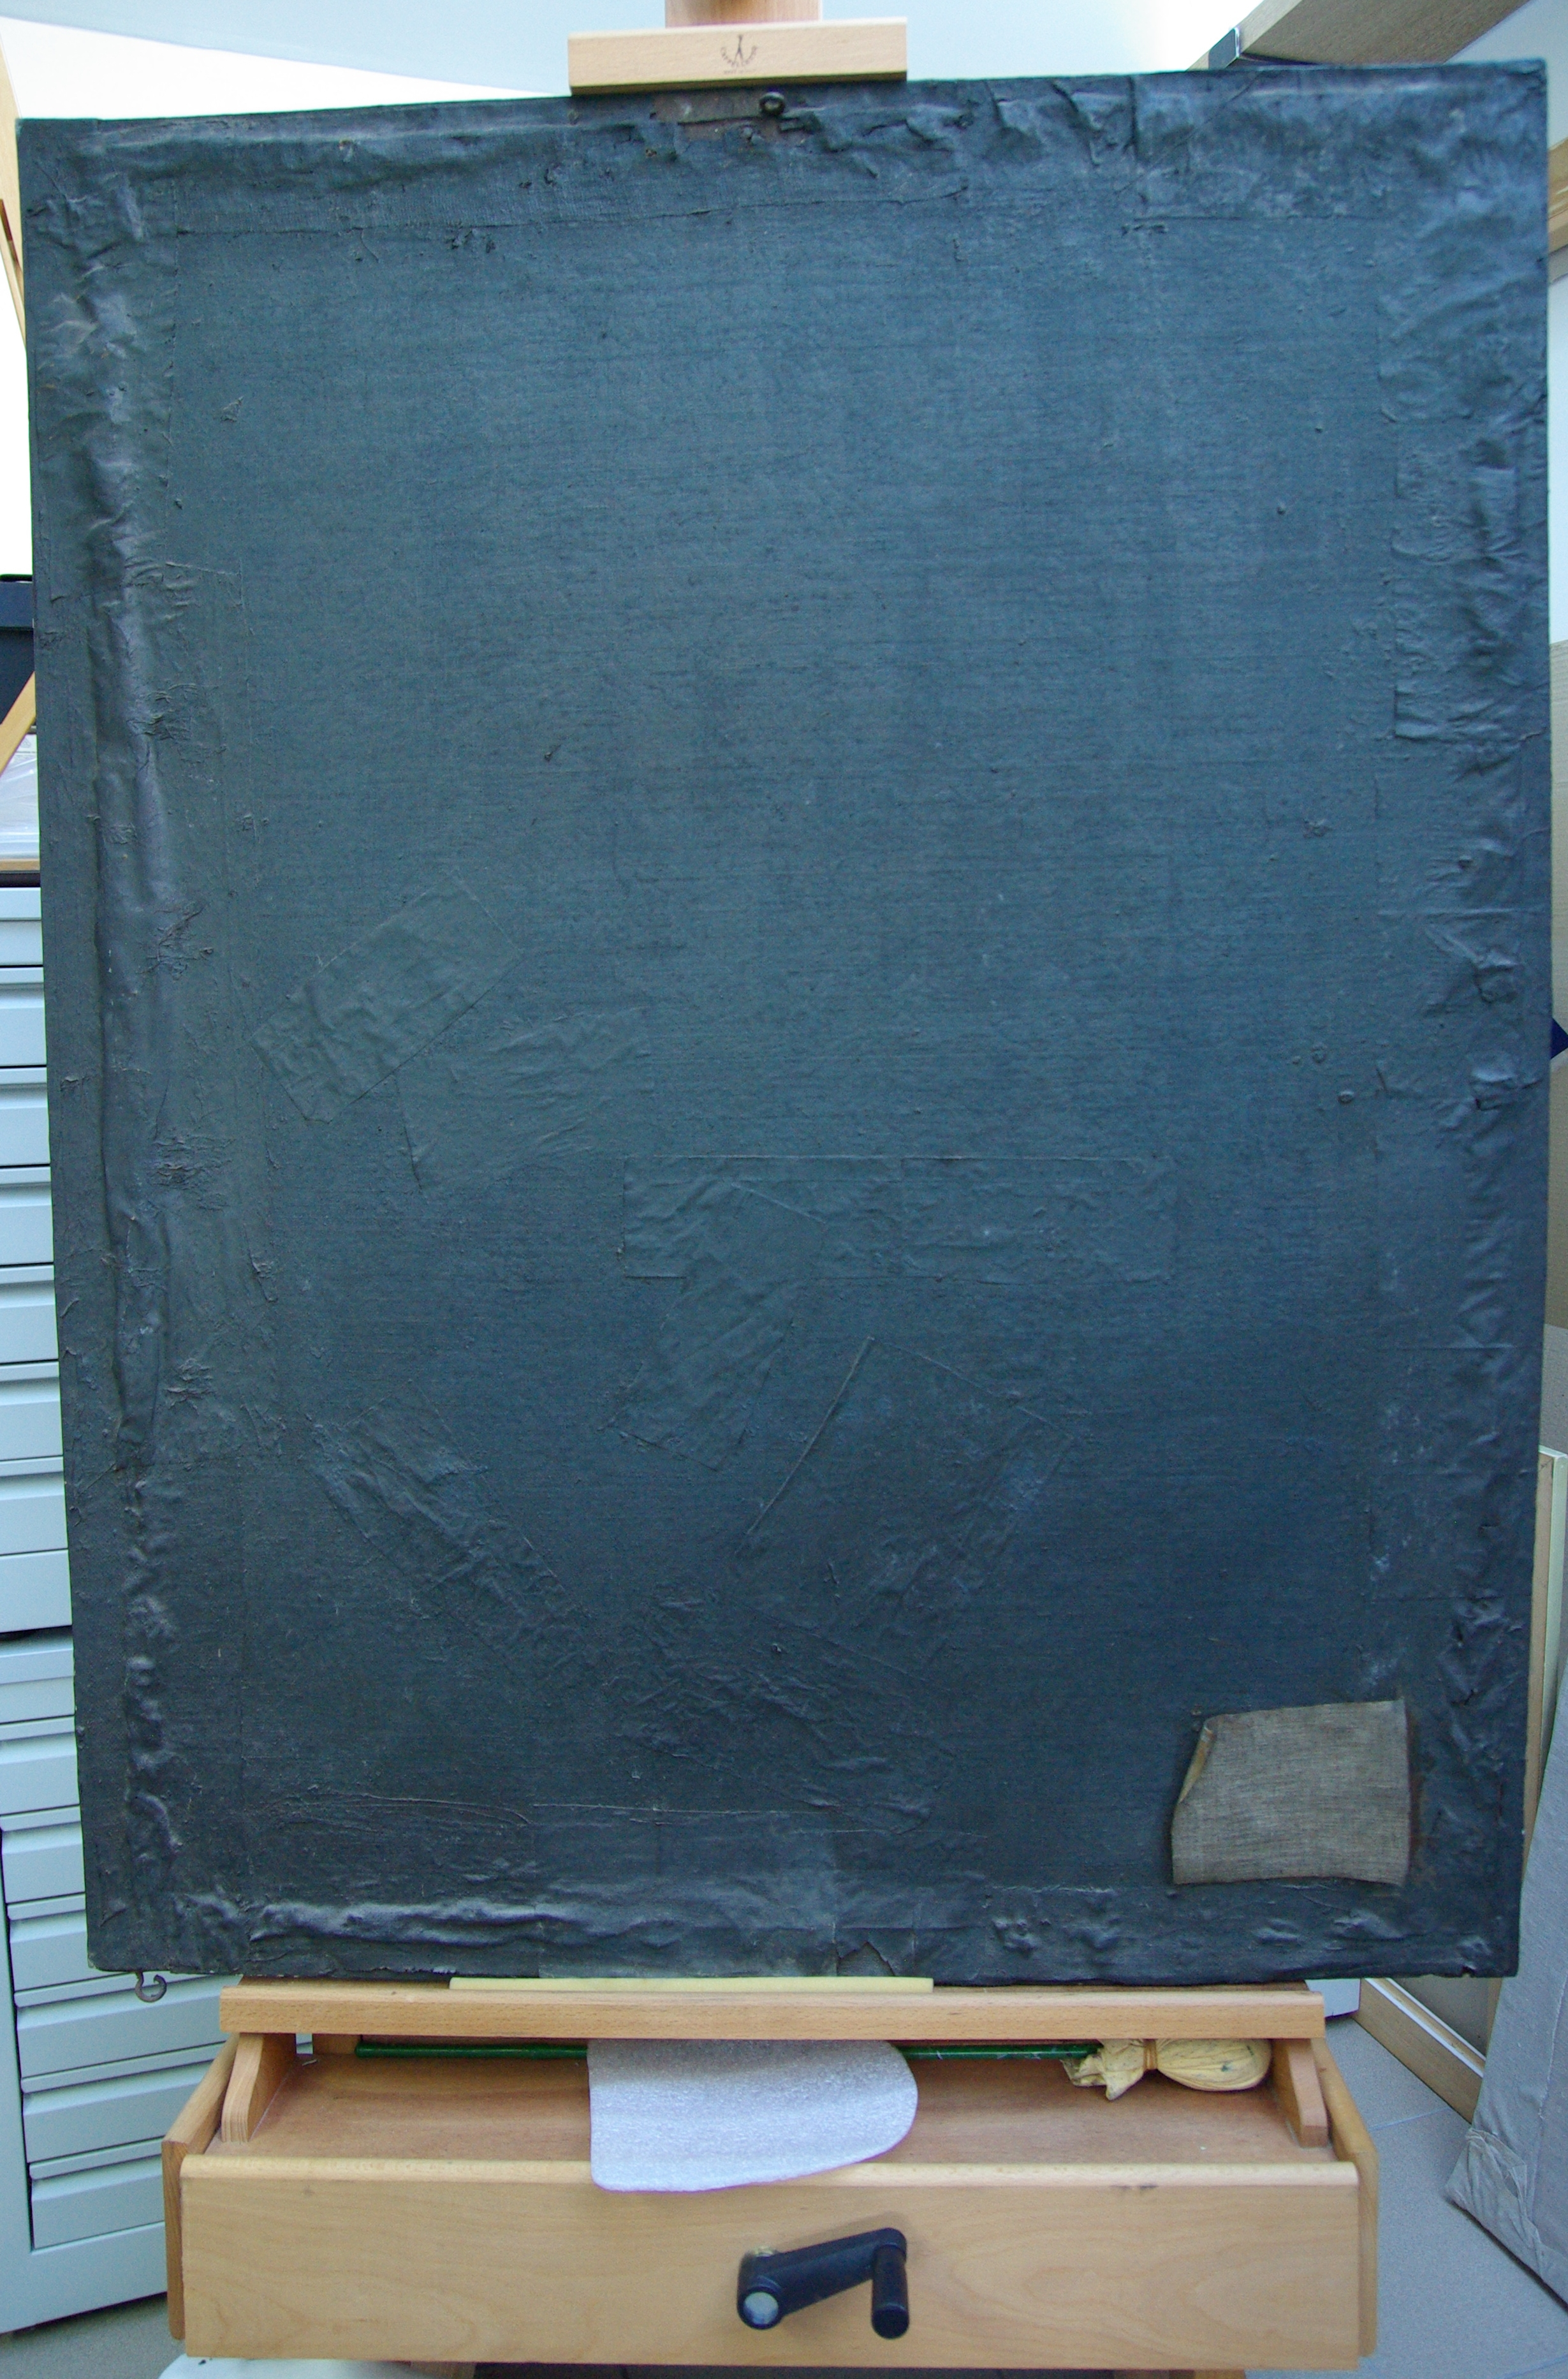 back-of-the-painting-covered-with-bitunous-black-paint